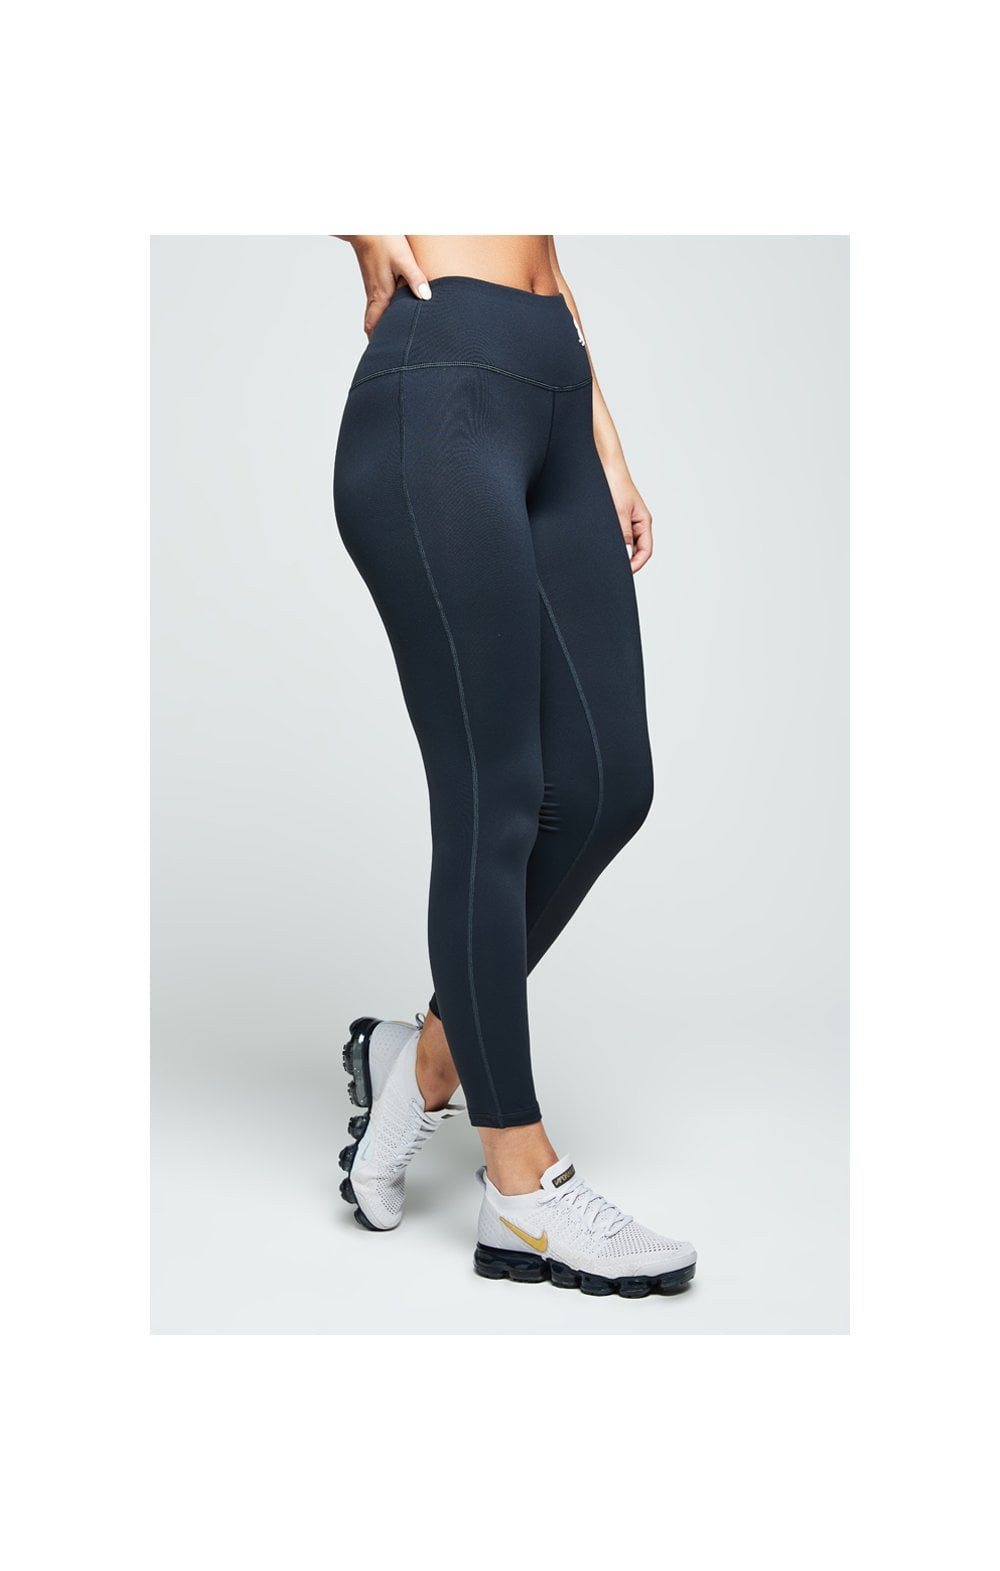 SikSilk Gym Leggings – Charcoal (4)